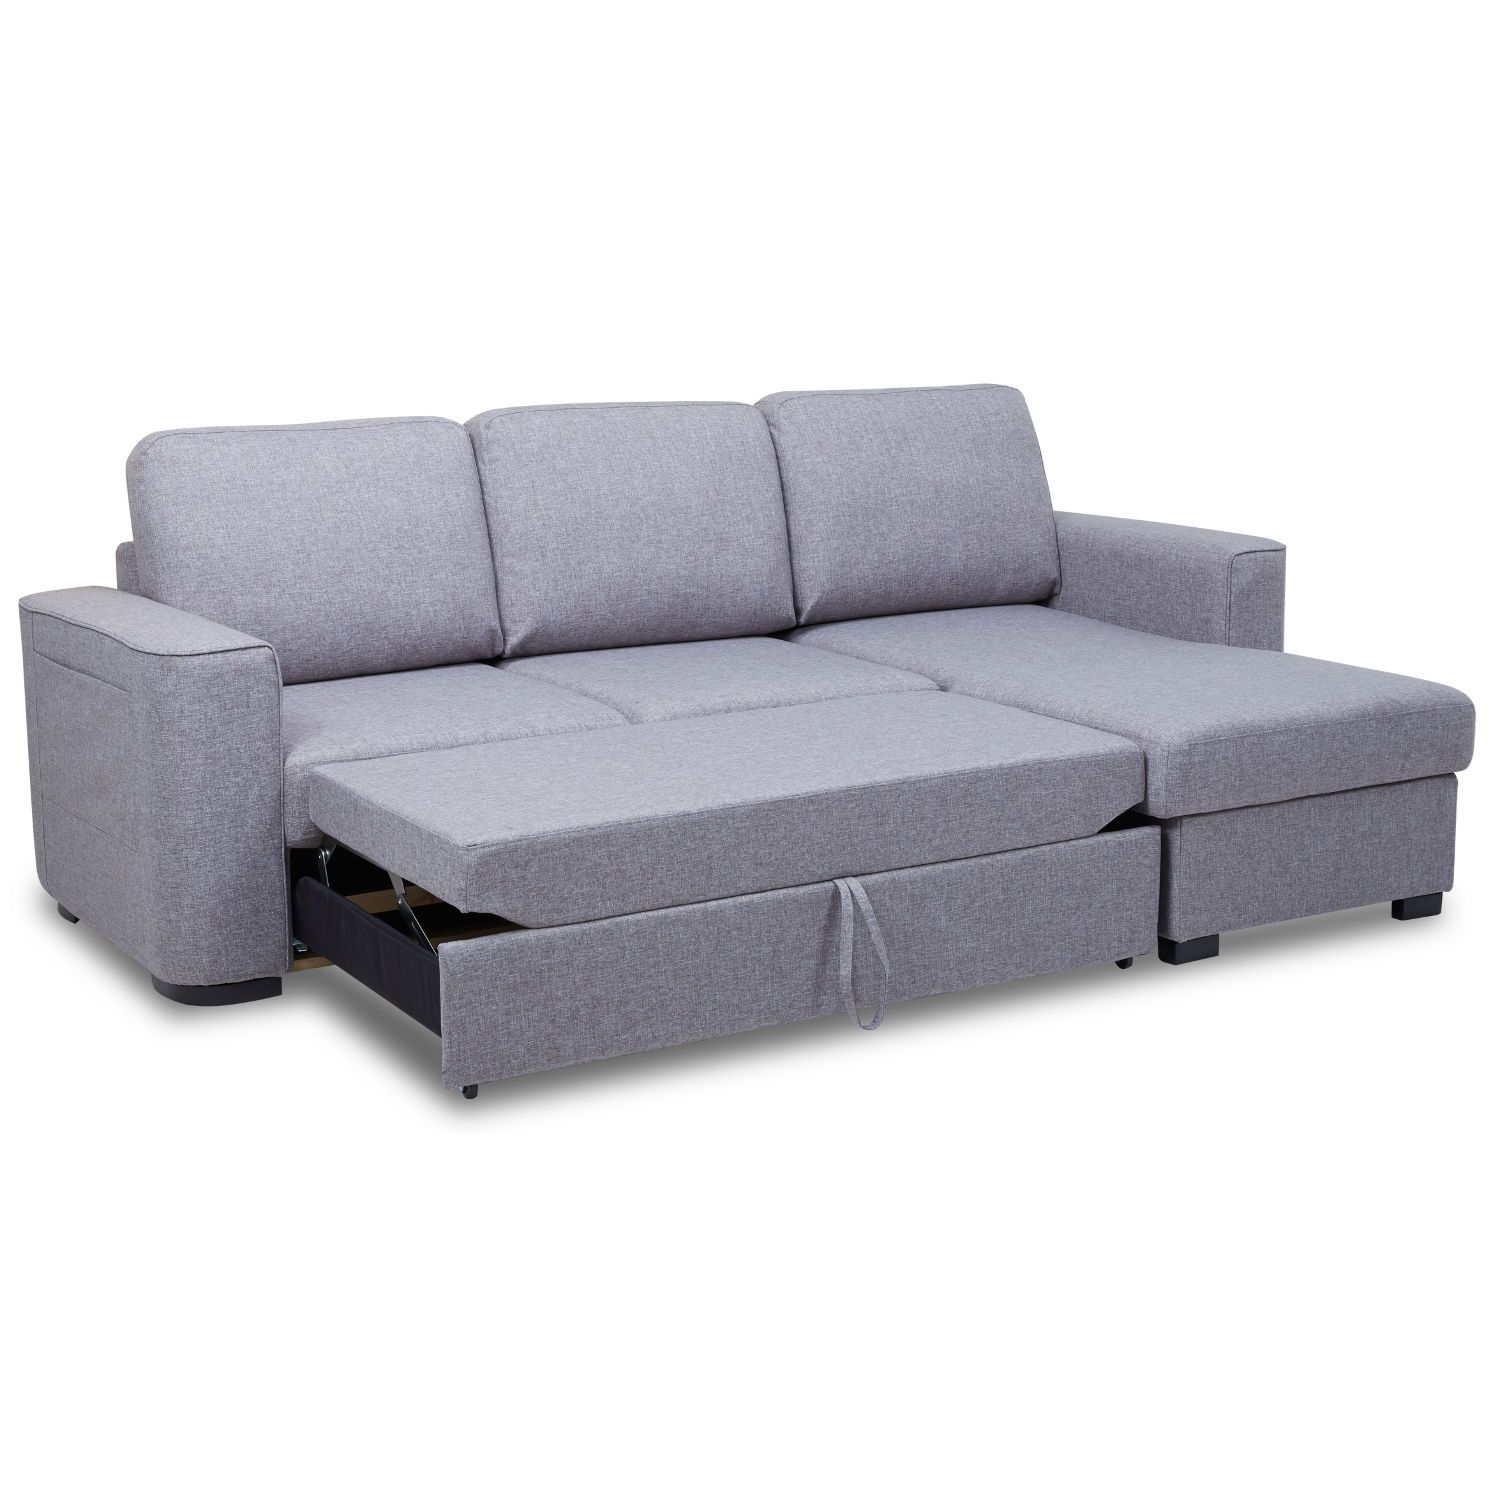 sofas delivered next day leathercraft sofa cost delivery uk brokeasshome